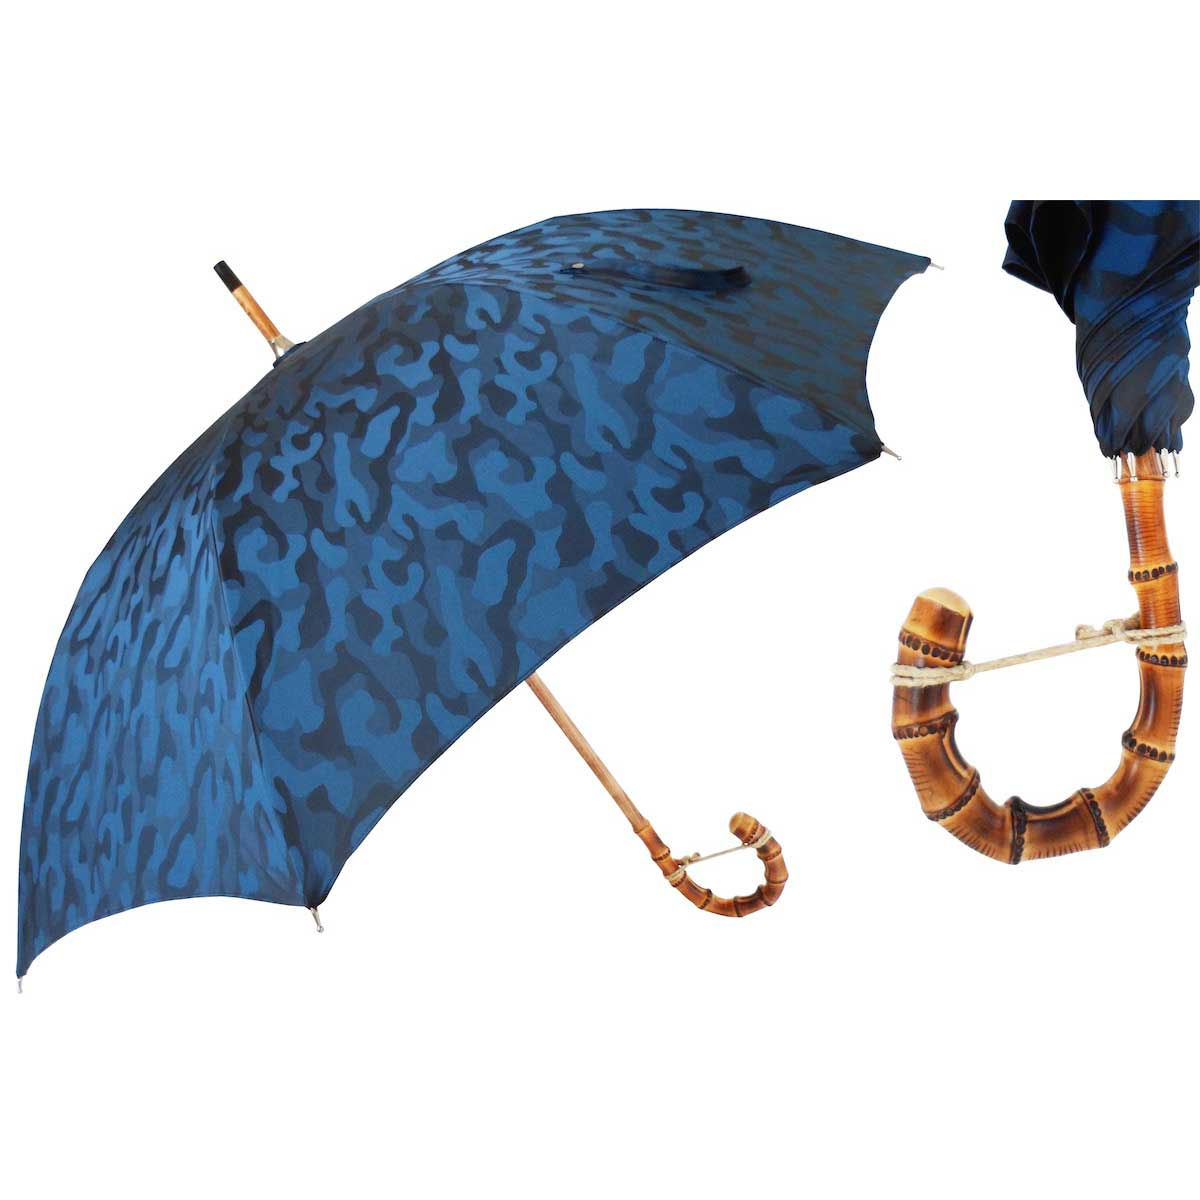 Pasotti Ombrelli Navy Blue Camouflage Men's Umbrella - Bamboo Handle